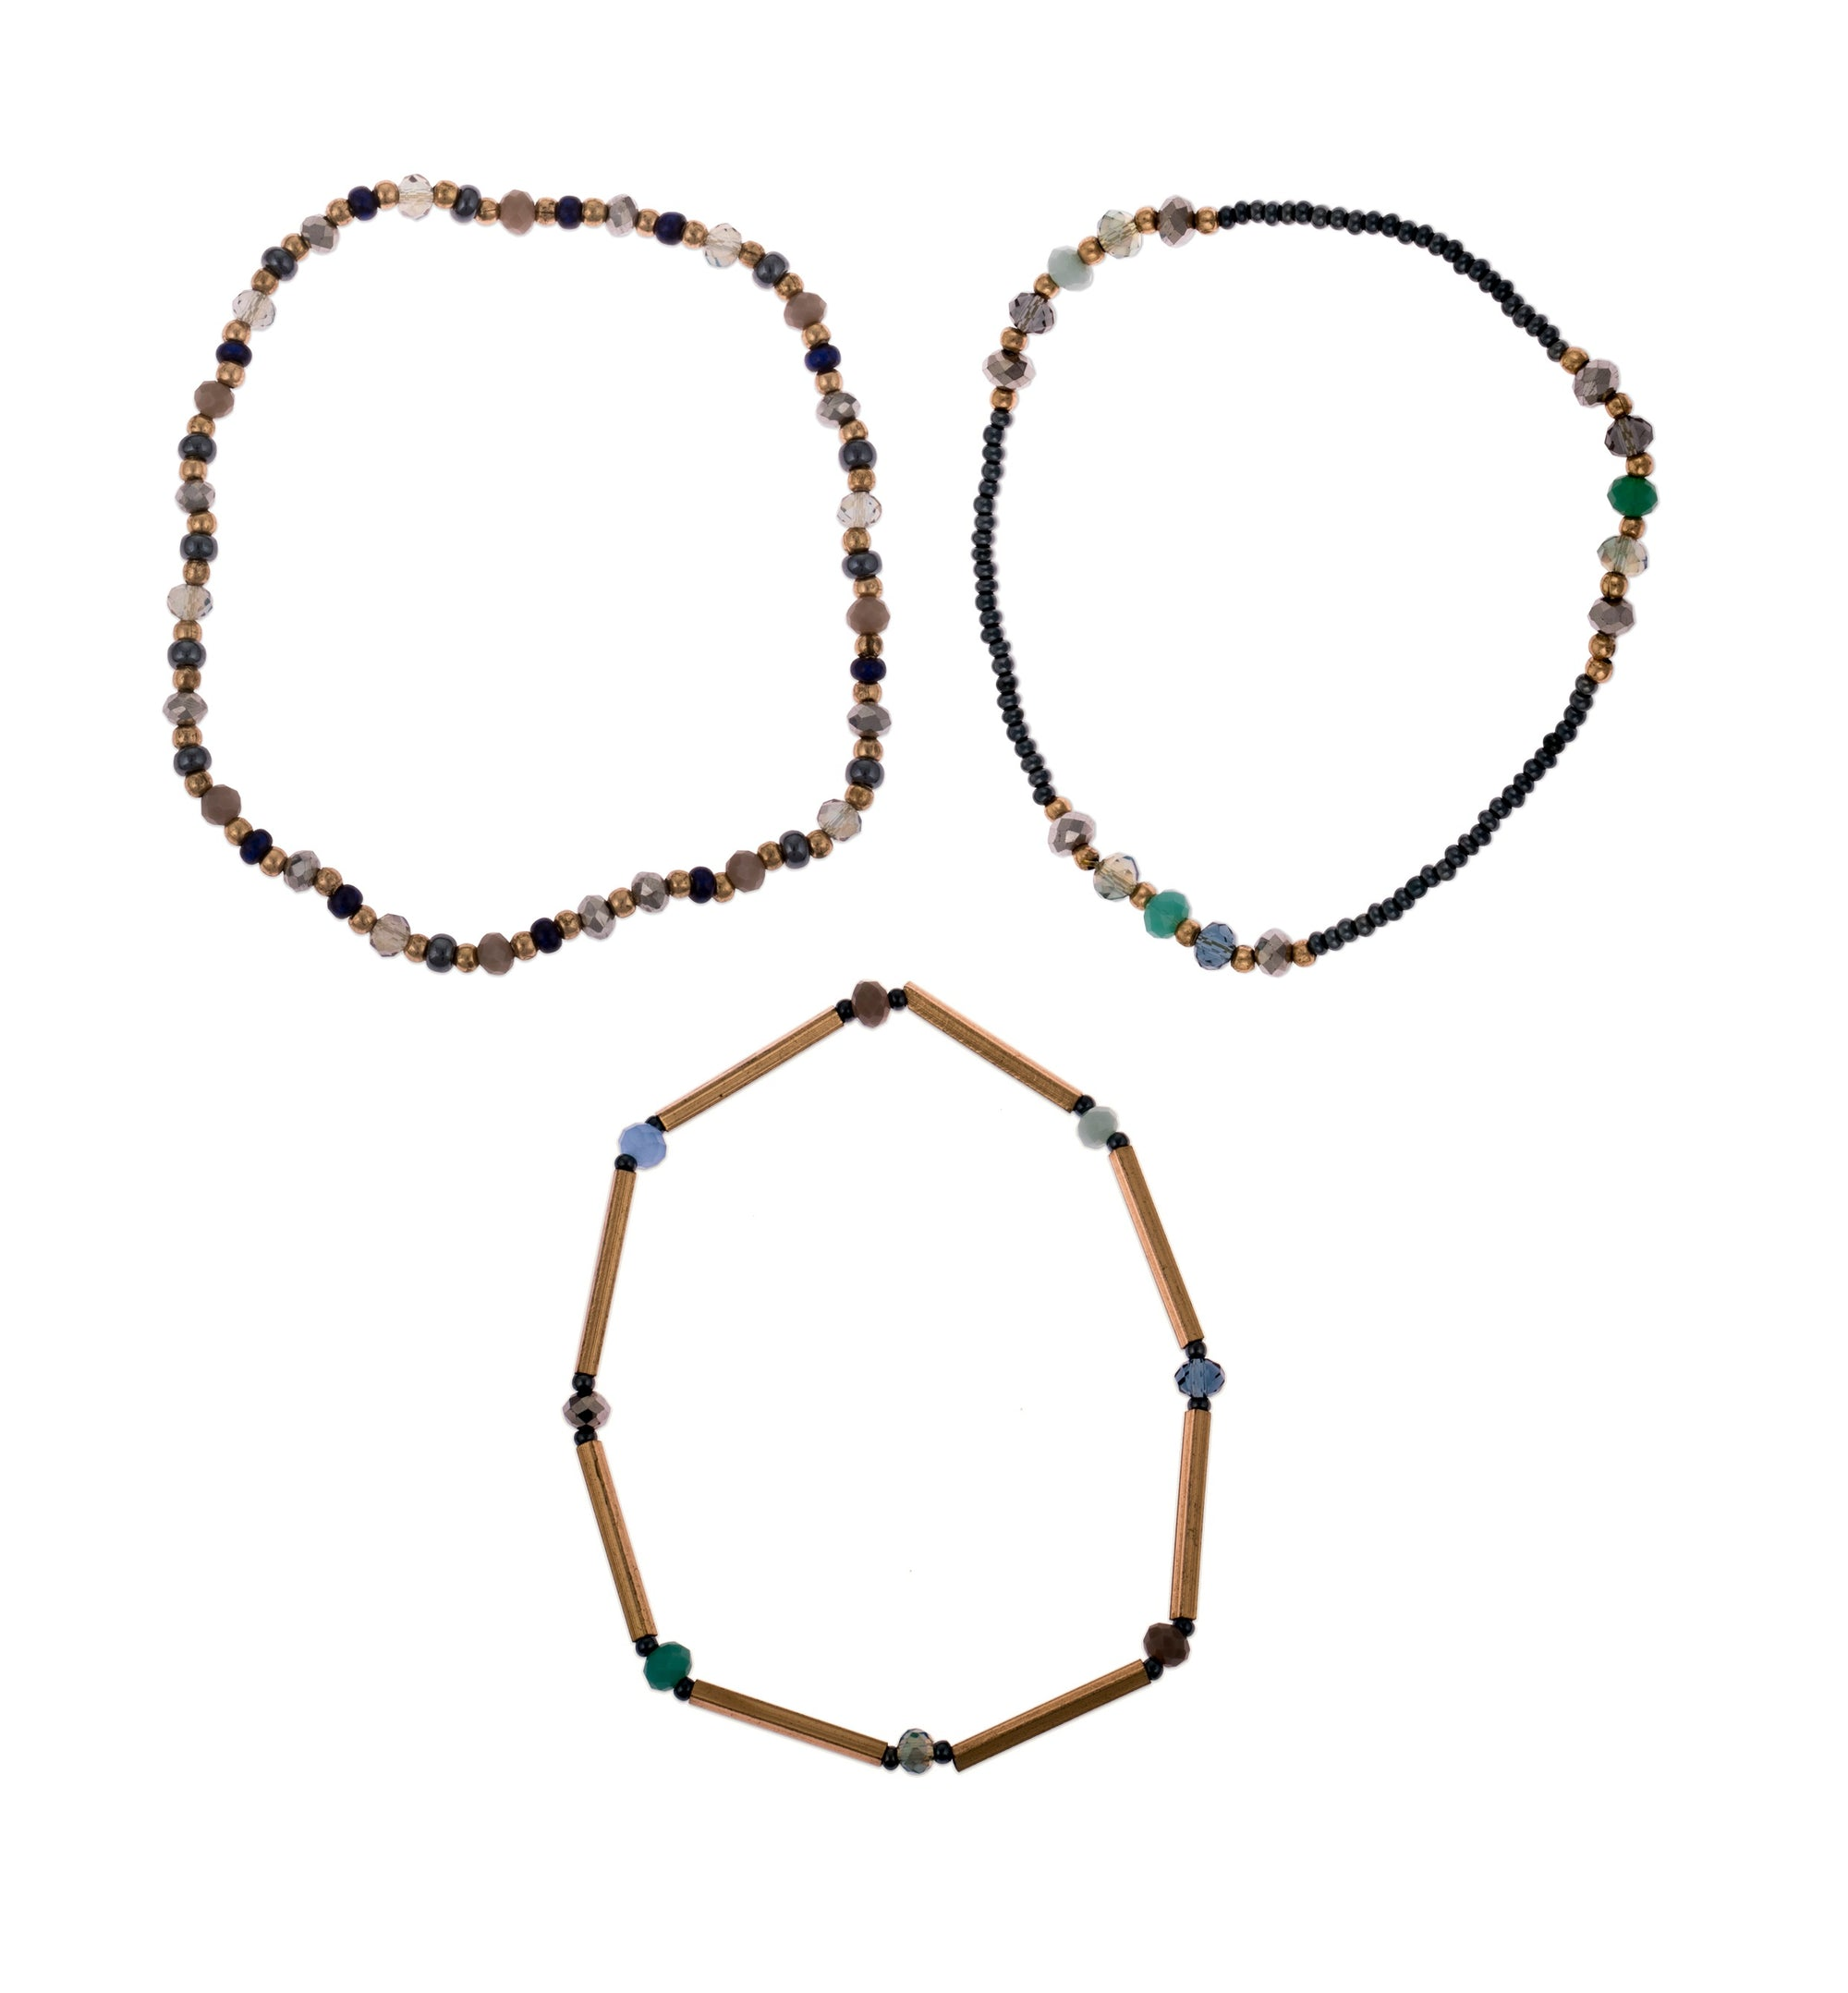 Esha Bracelet | Set of 3 | Accessories | Daughters of The Ganges | [product_tag] - Fair Bazaar Ethical Living